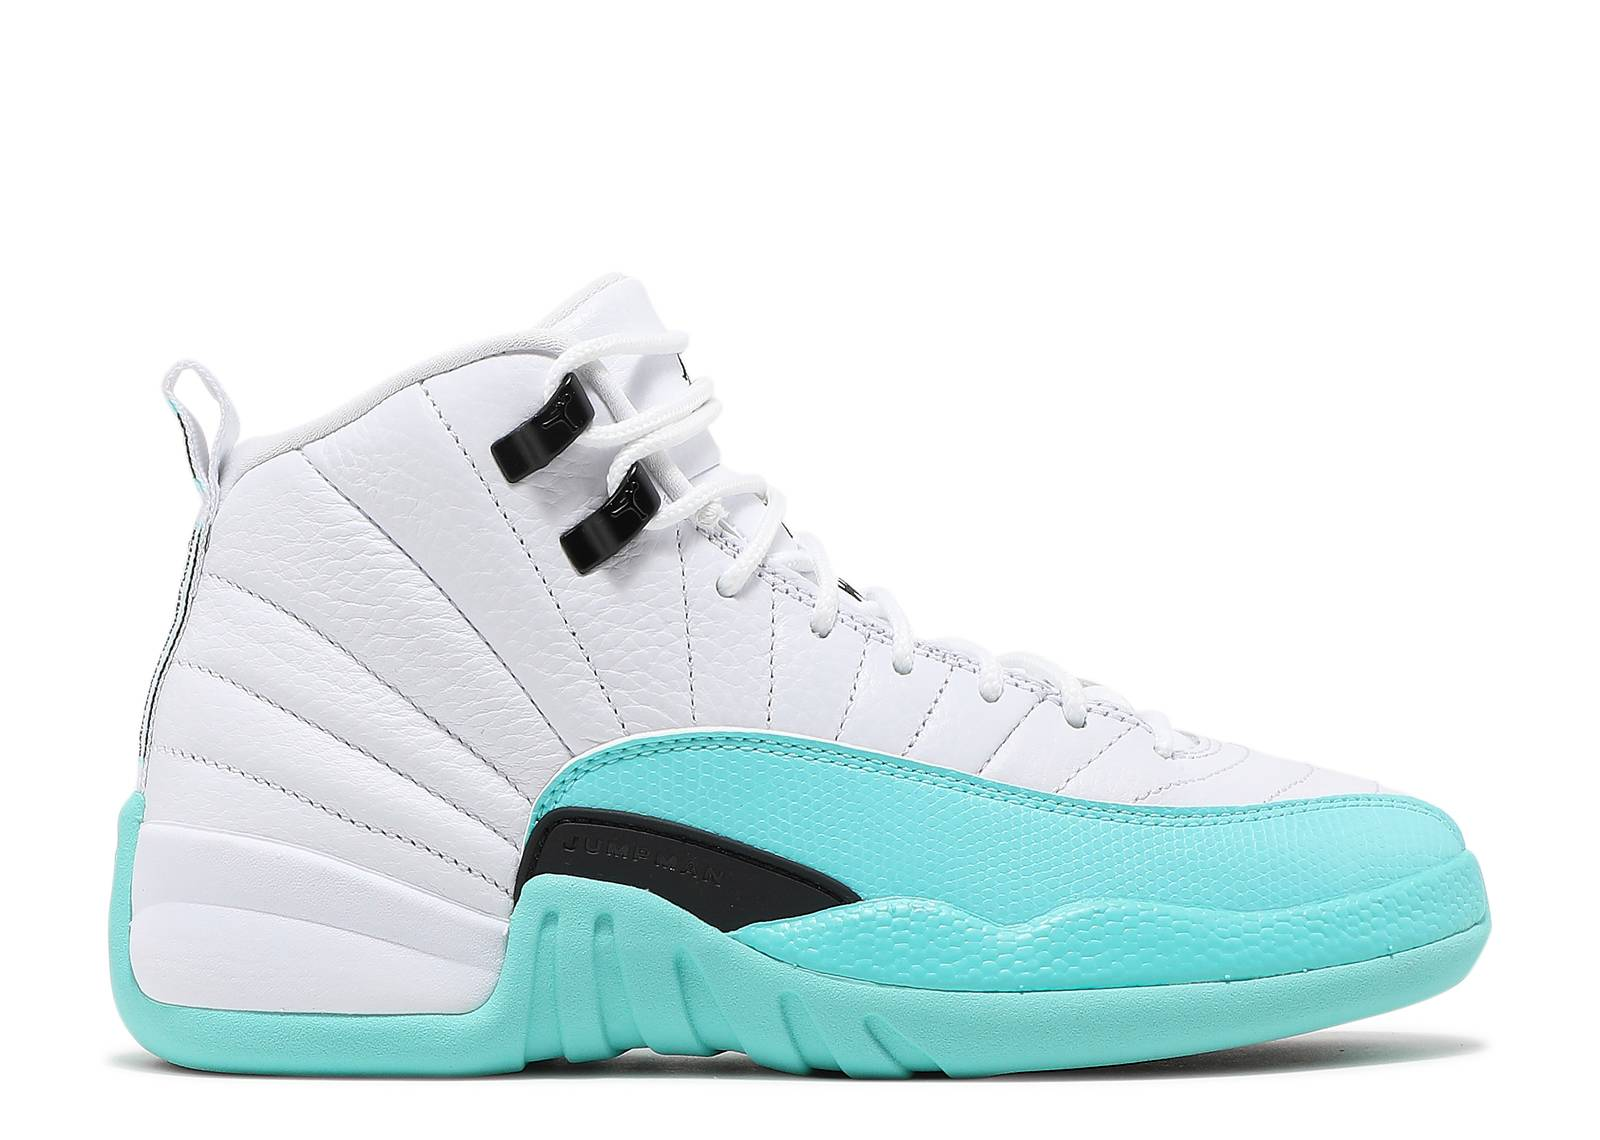 promo code 4e519 e0937 air jordan 12 retro gg (gs)